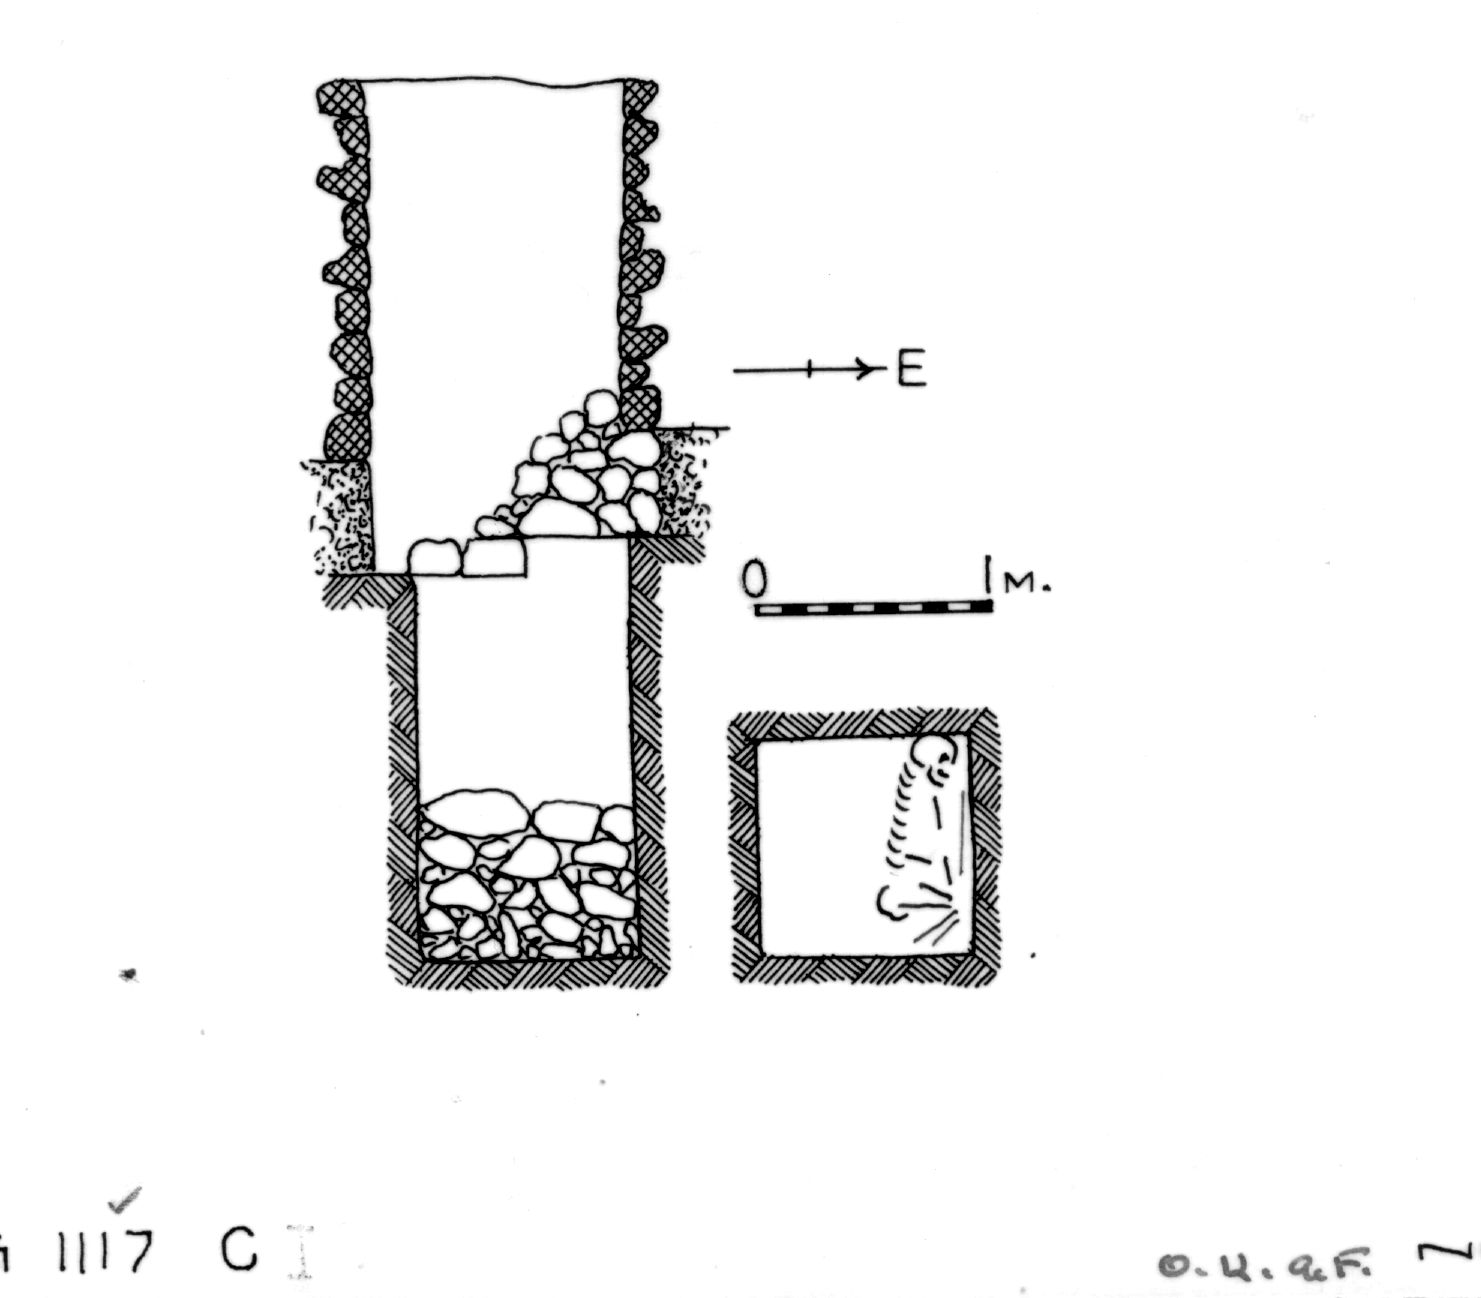 Maps and plans: G 1117, Shaft C